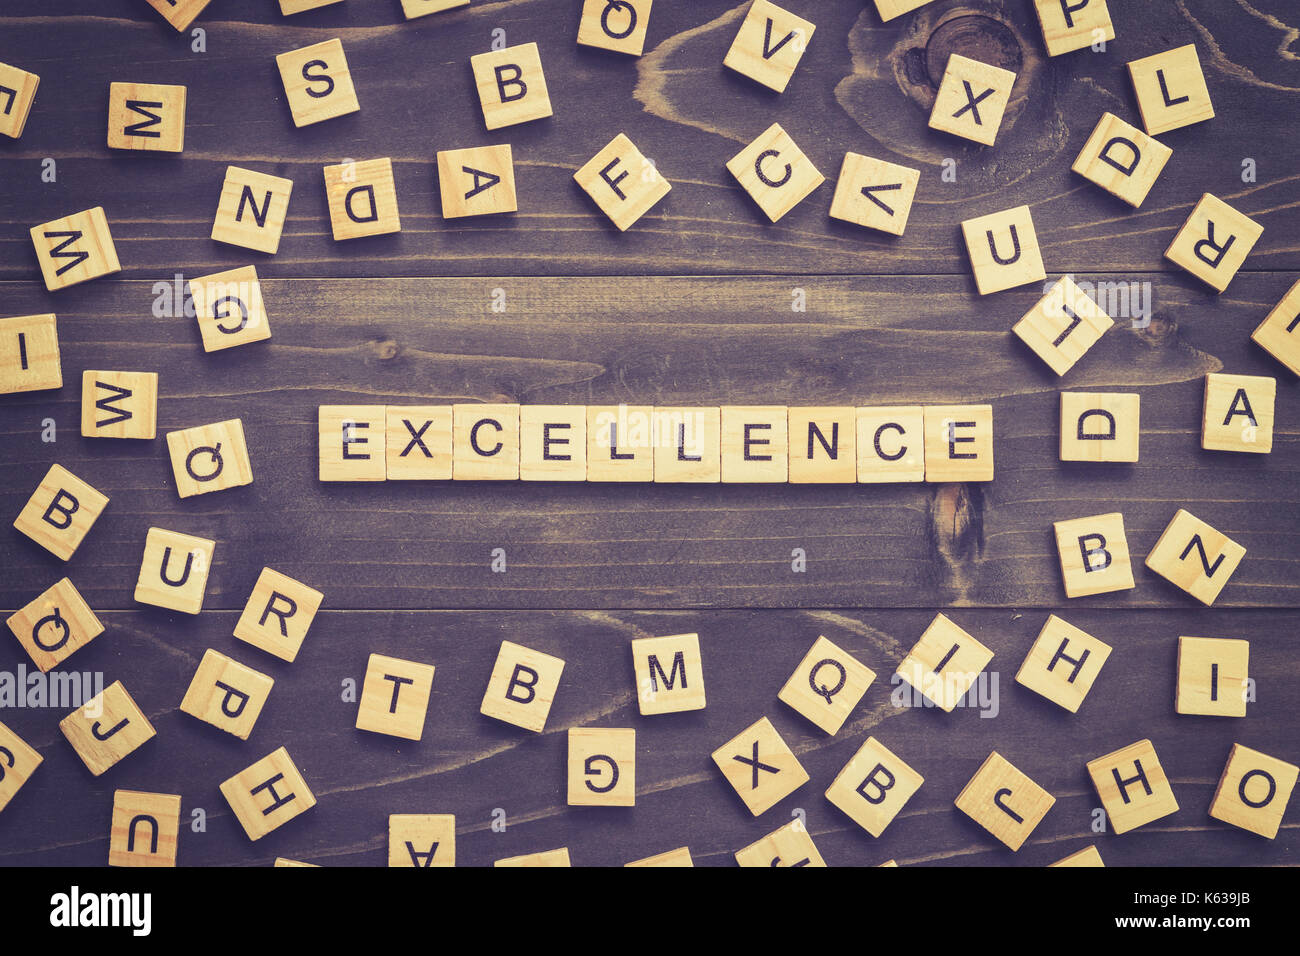 Excellence word wood block on table for business concept. - Stock Image